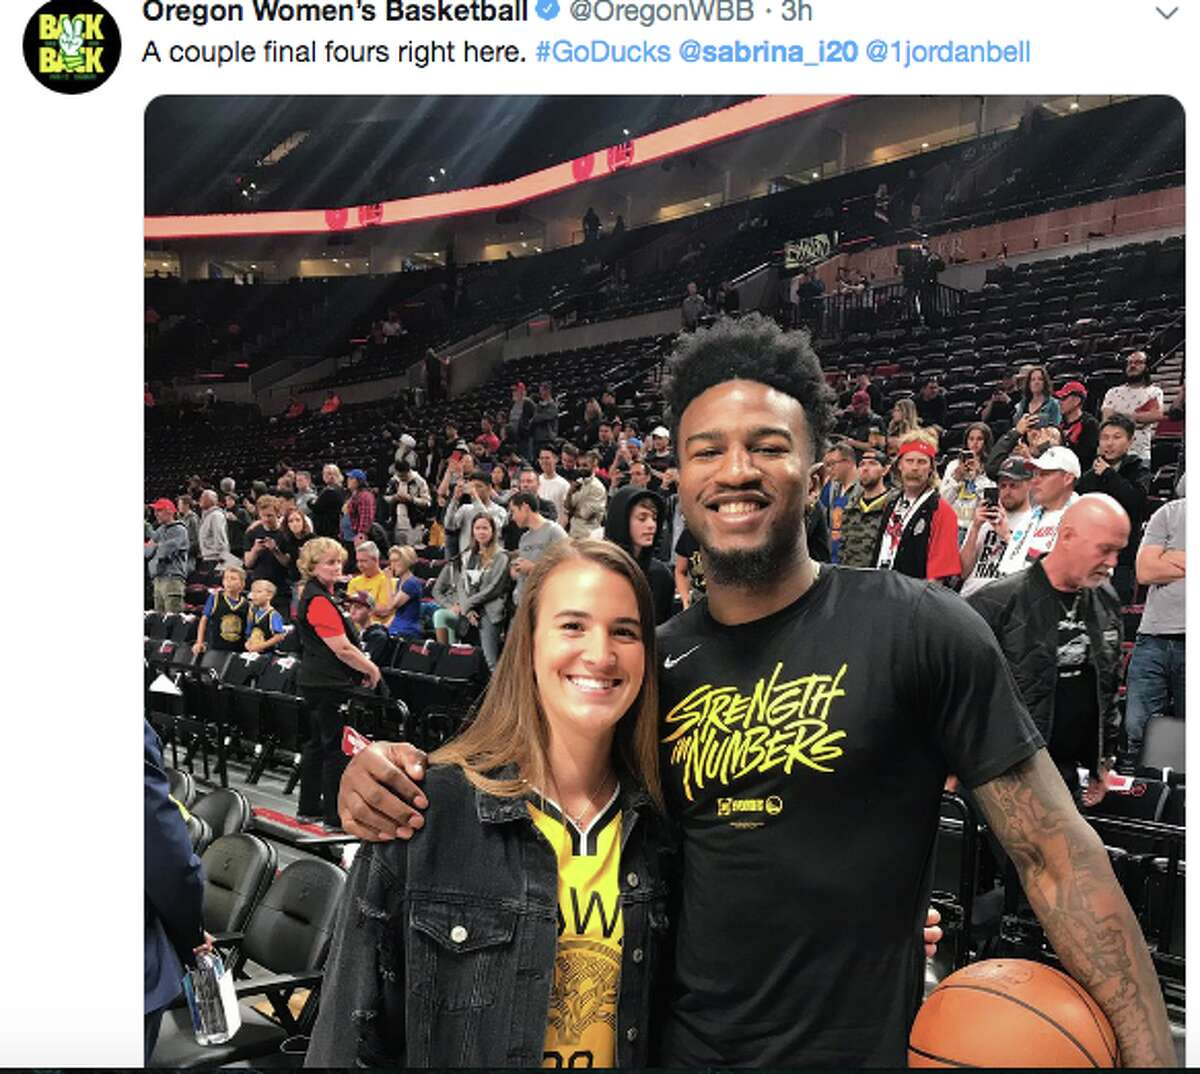 Oregon basketball star Sabrina Ionescu was one of several notable attendees of Game 3 of the Western Conference Finals.